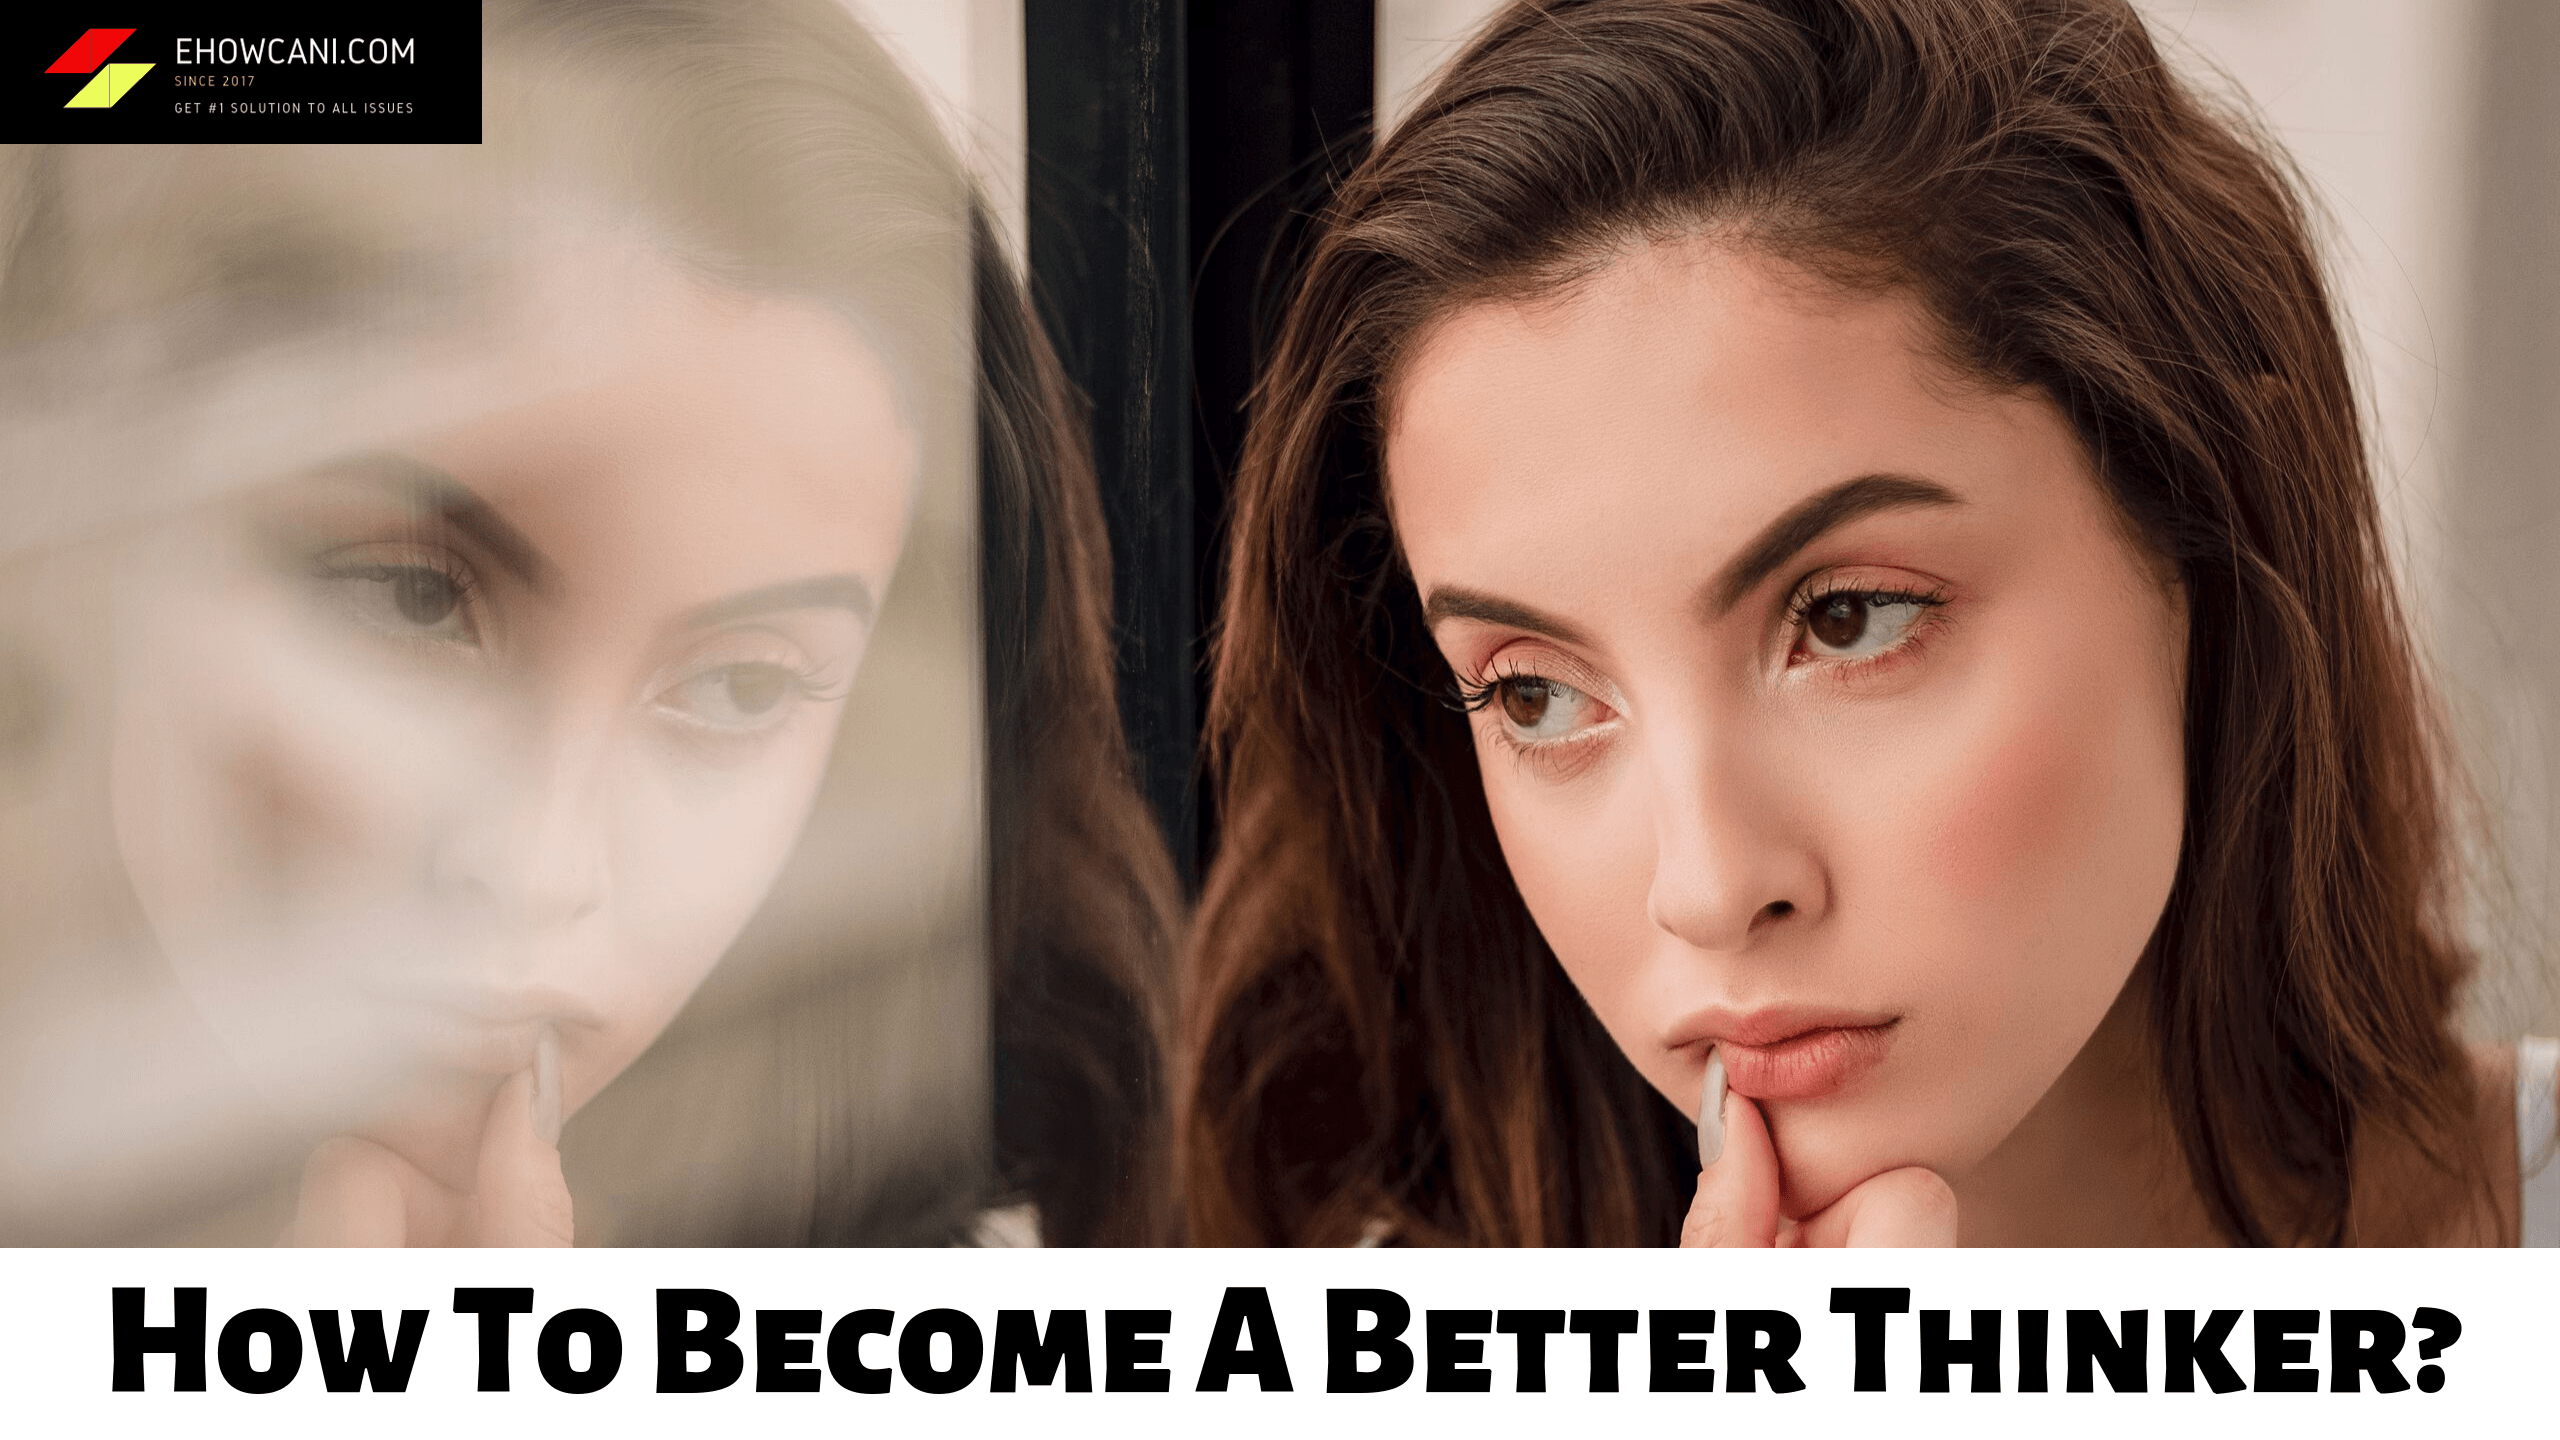 Become a better thinker